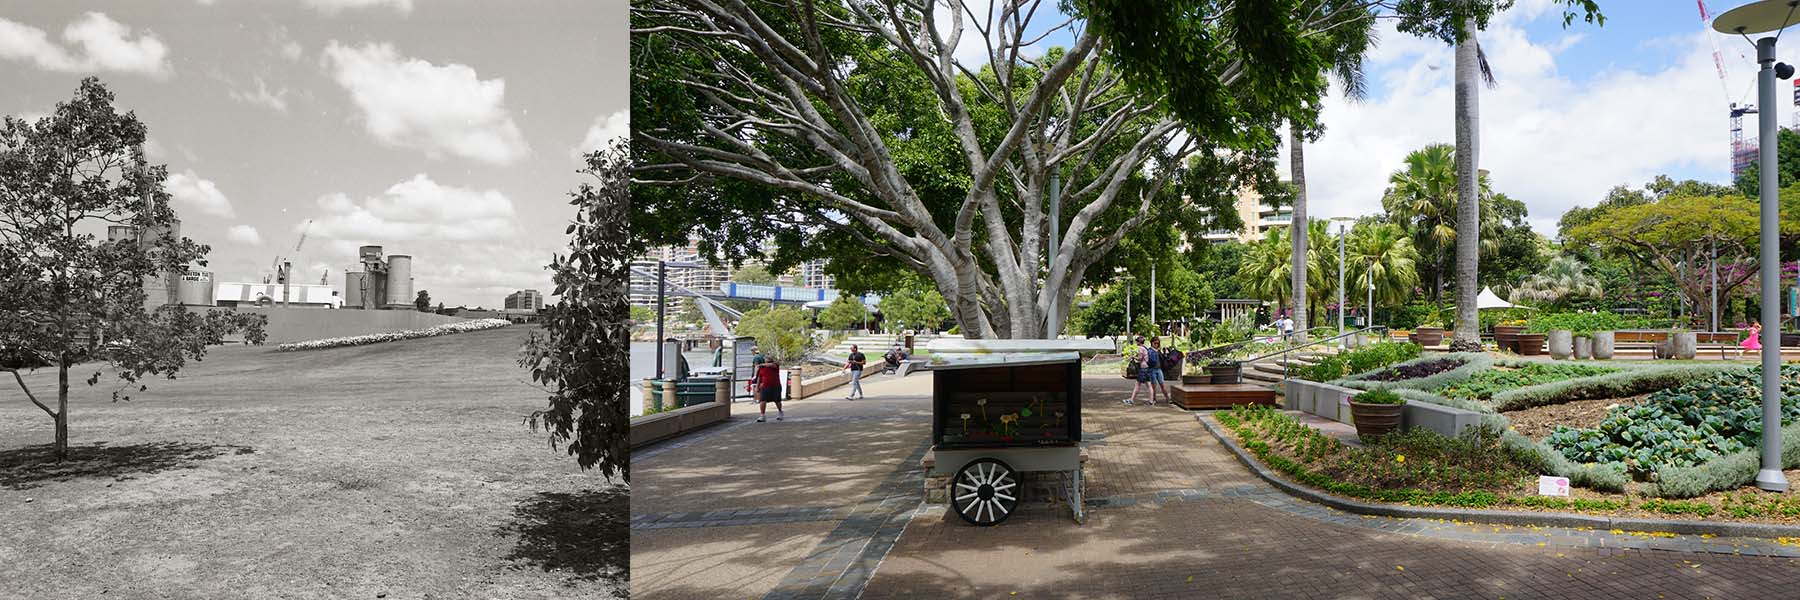 Clem Jones Gardens (From Stanley Street) 1982 and 2015